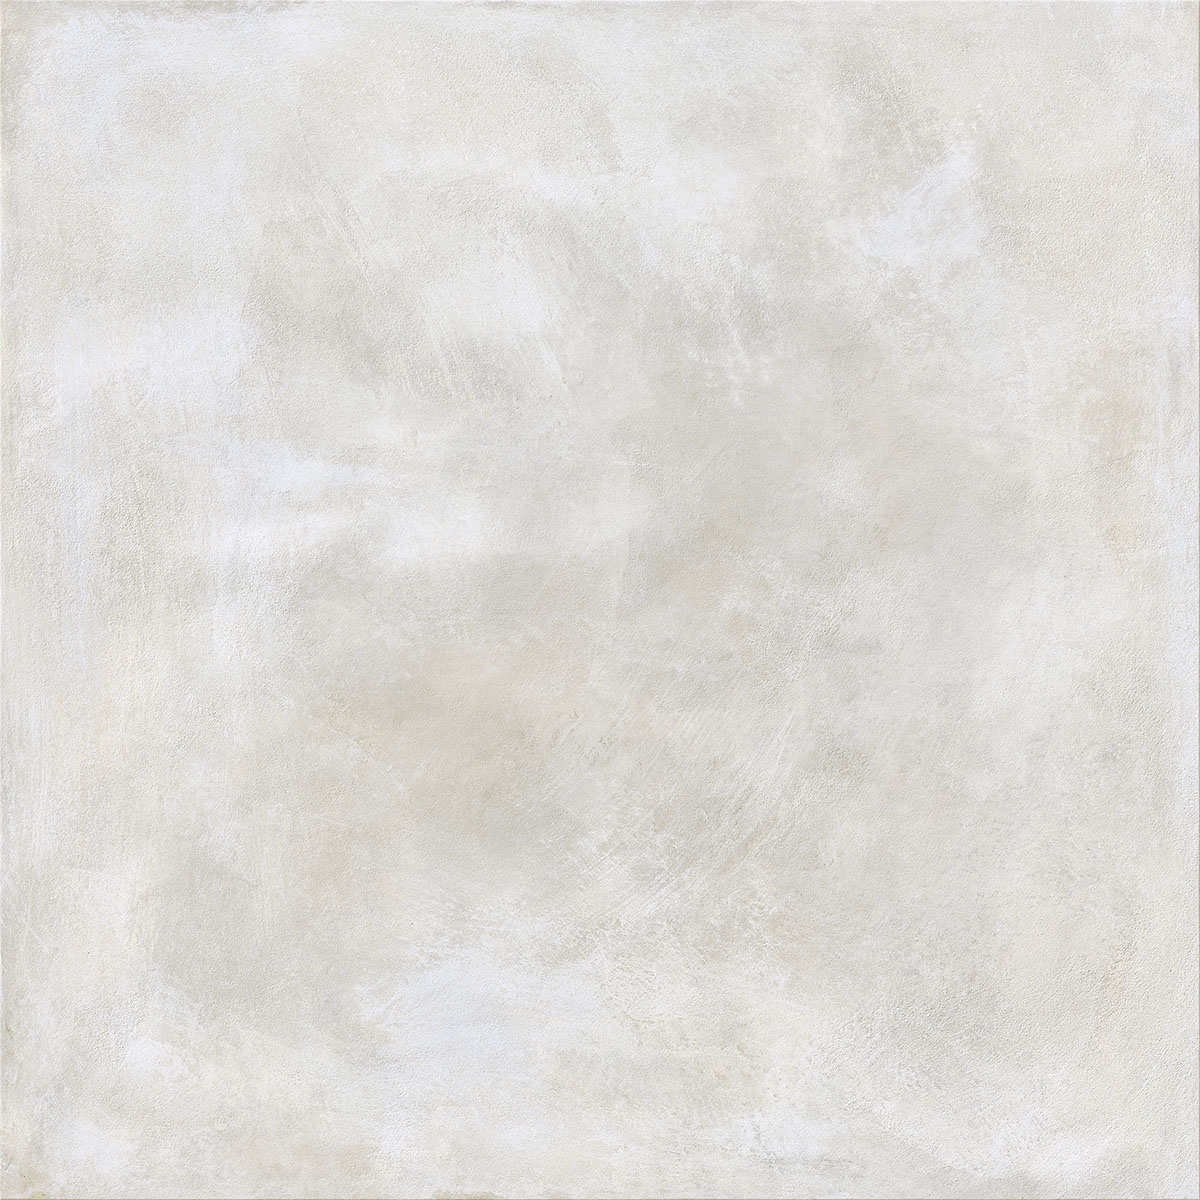 Antique white 45 x 45